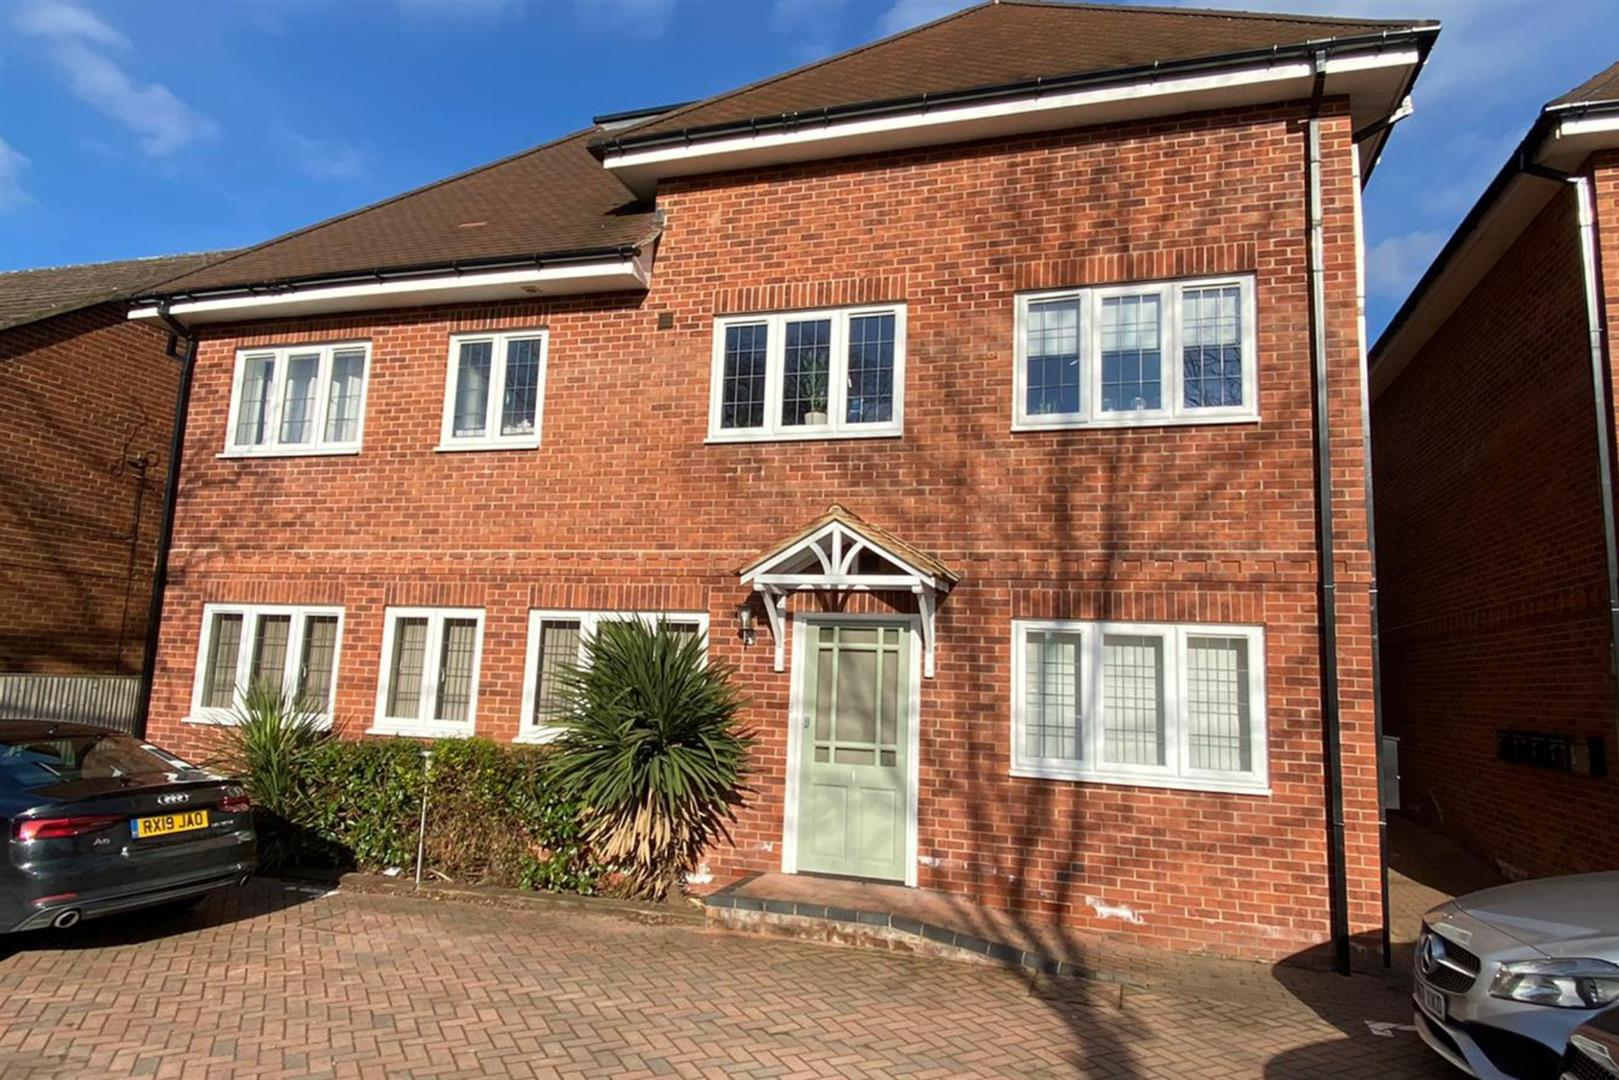 1 bed maisonette for sale in Winnersh, RG41